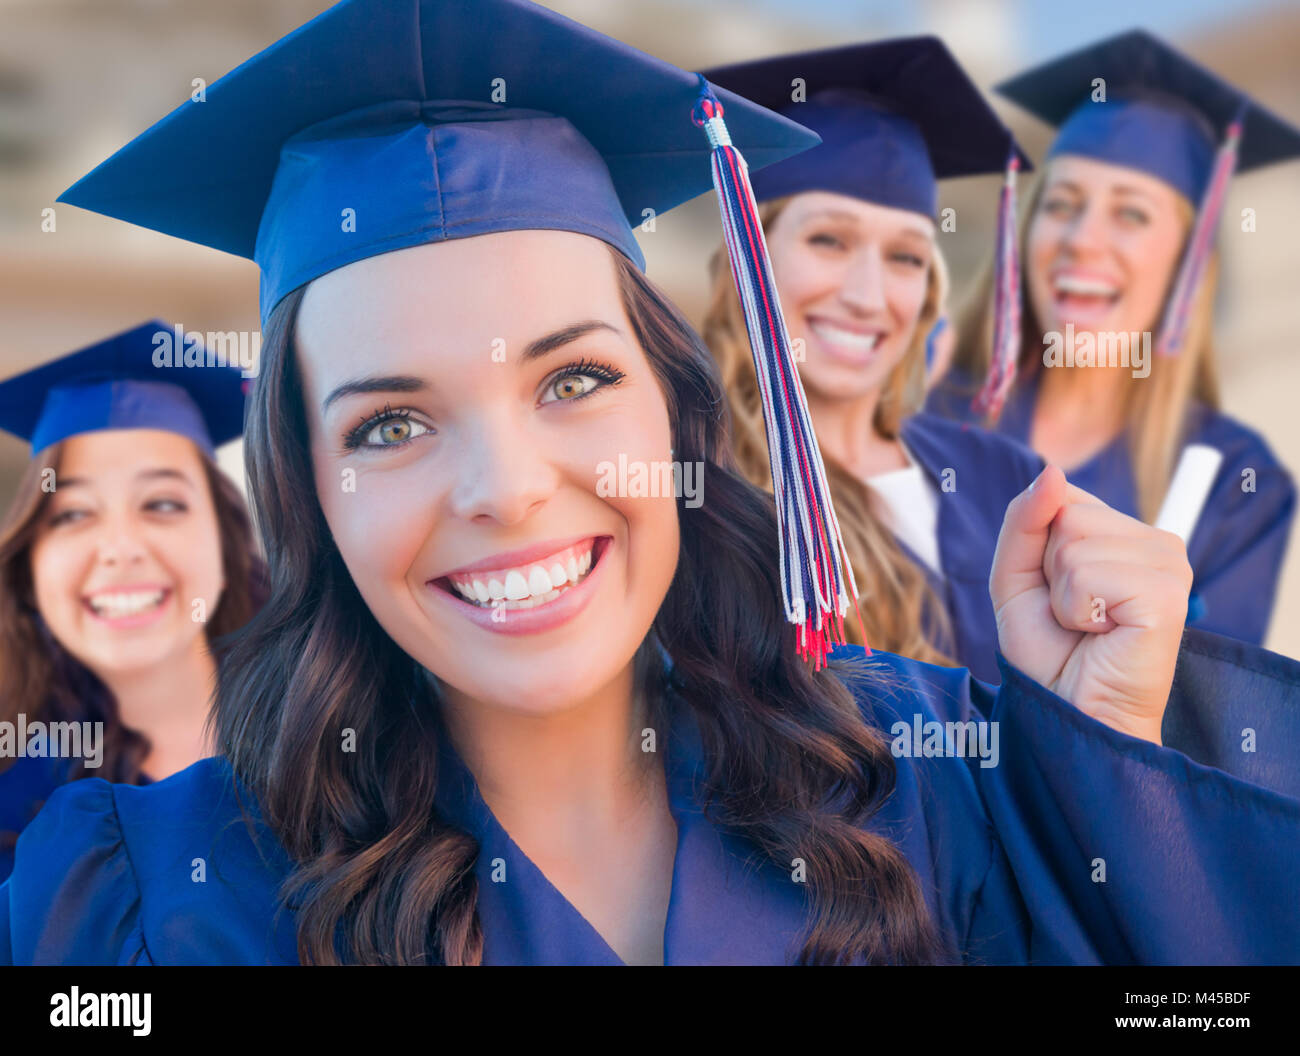 Happy Graduating Group of Girls In Cap and Gown Celebrating on Campus. - Stock Image